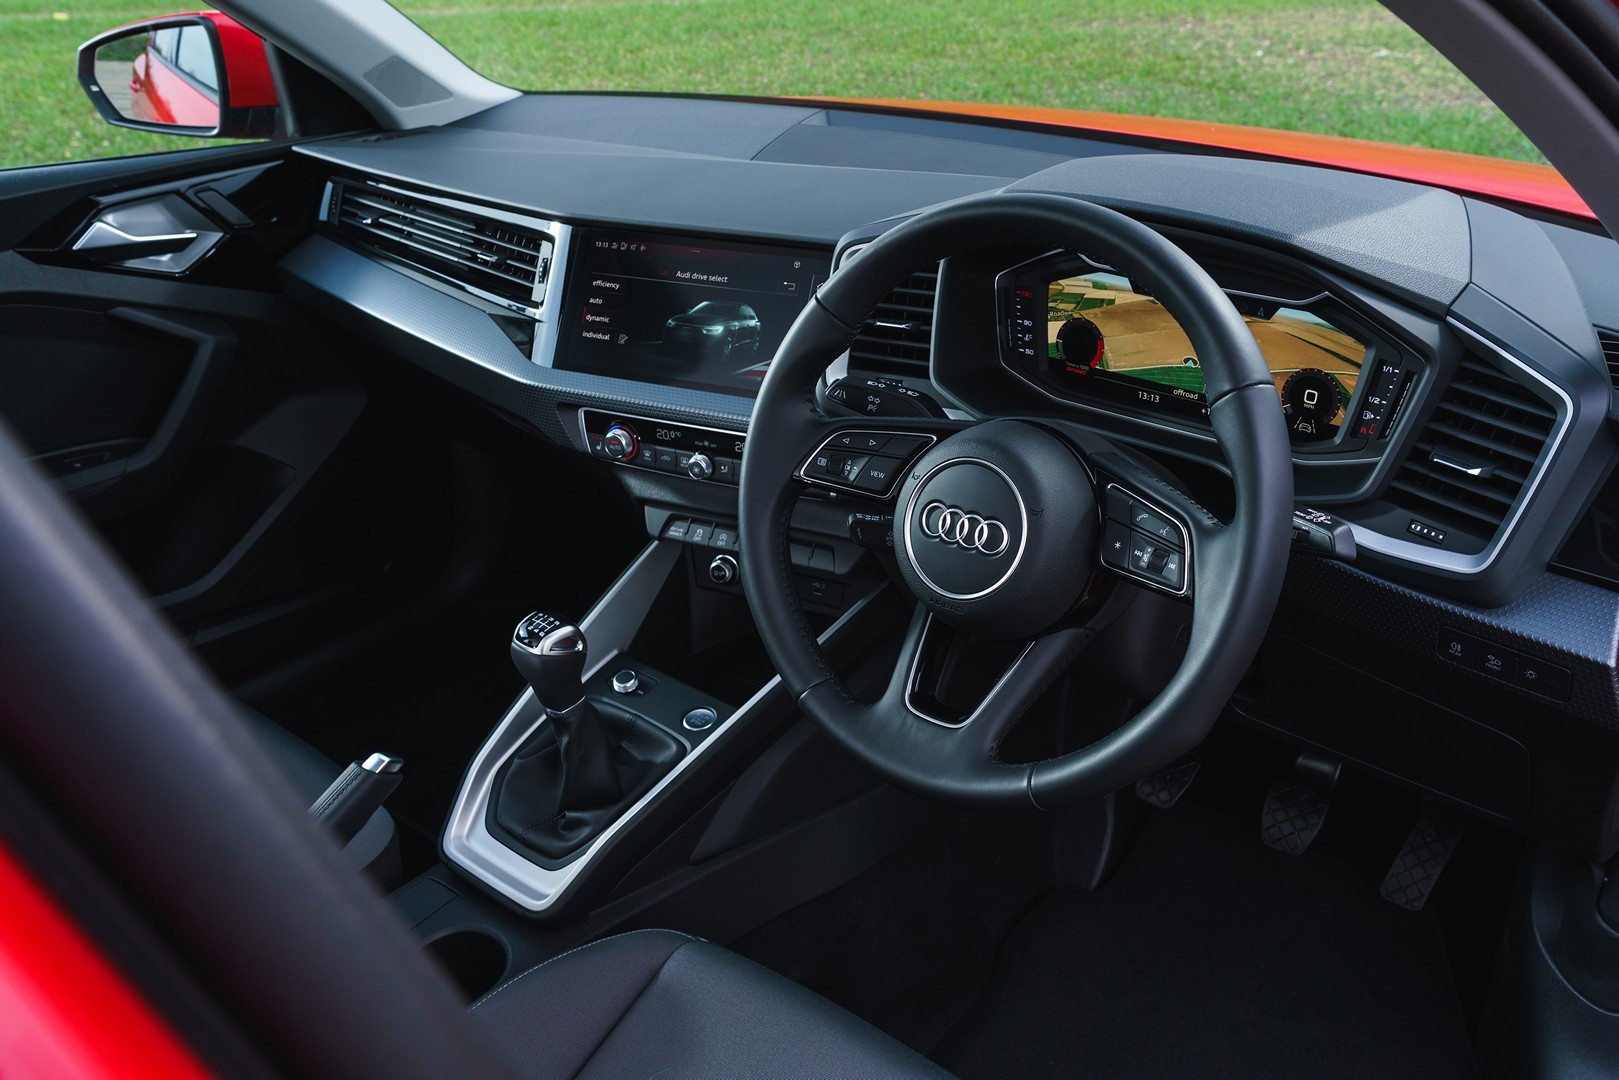 2019 Audi A1 Teases Virtual Cockpit, Huge MMI Screen Ahead